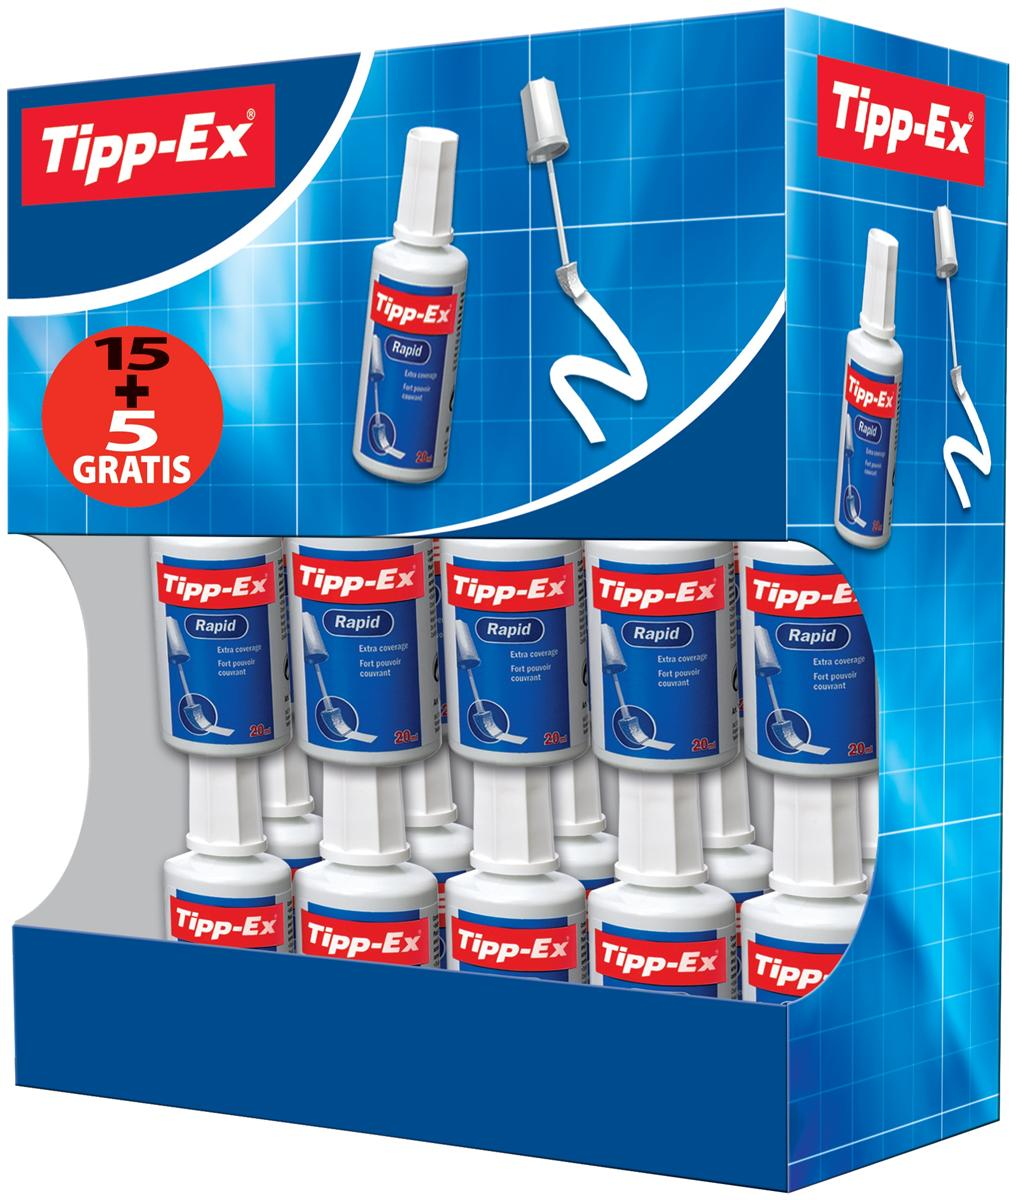 Image for Tipp-Ex Rapid Correction Fluid Fast-drying 20ml White Ref 895950 [Pack 15 & 5]